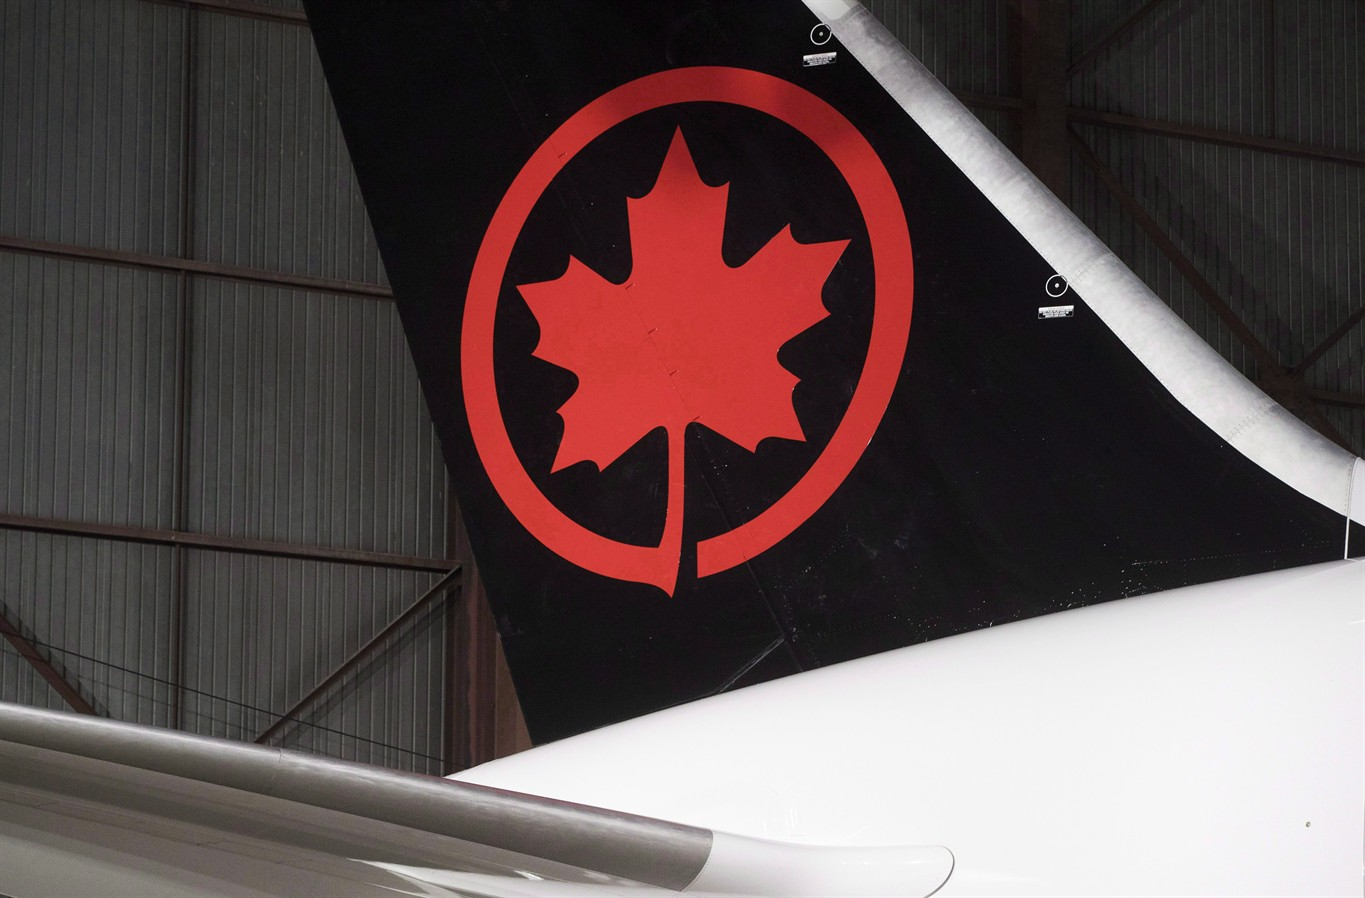 Air Canada planning to raise airfares to offset rise in fuel